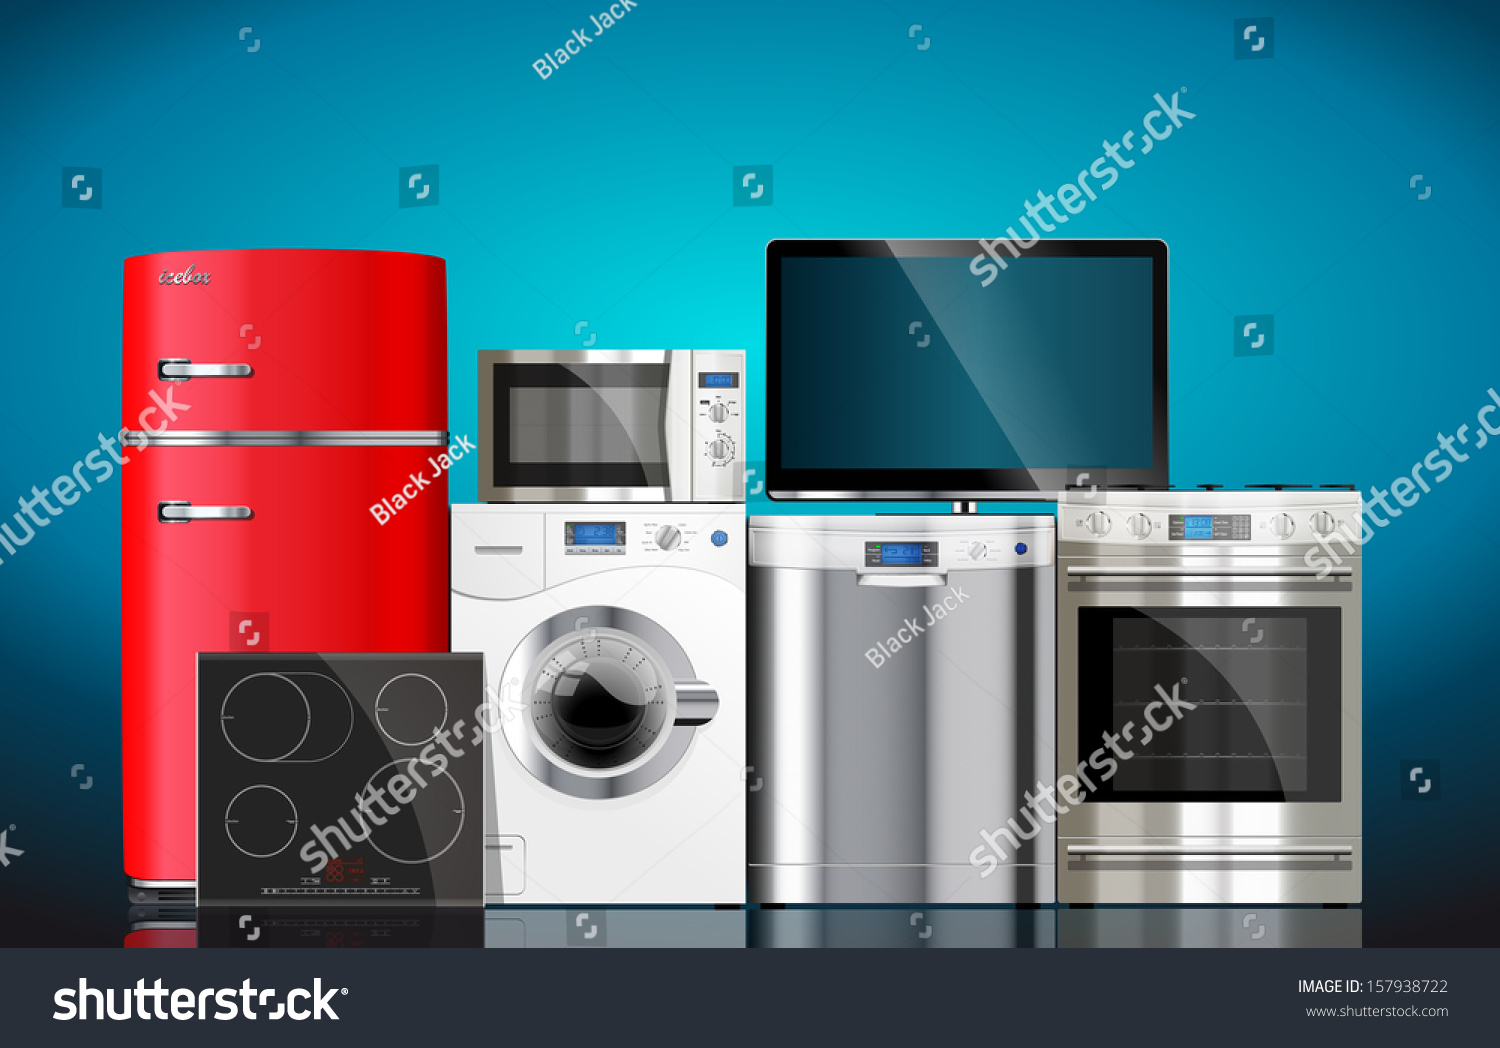 Kitchen House Appliances Microwave Washing Machine Stock Vector ...